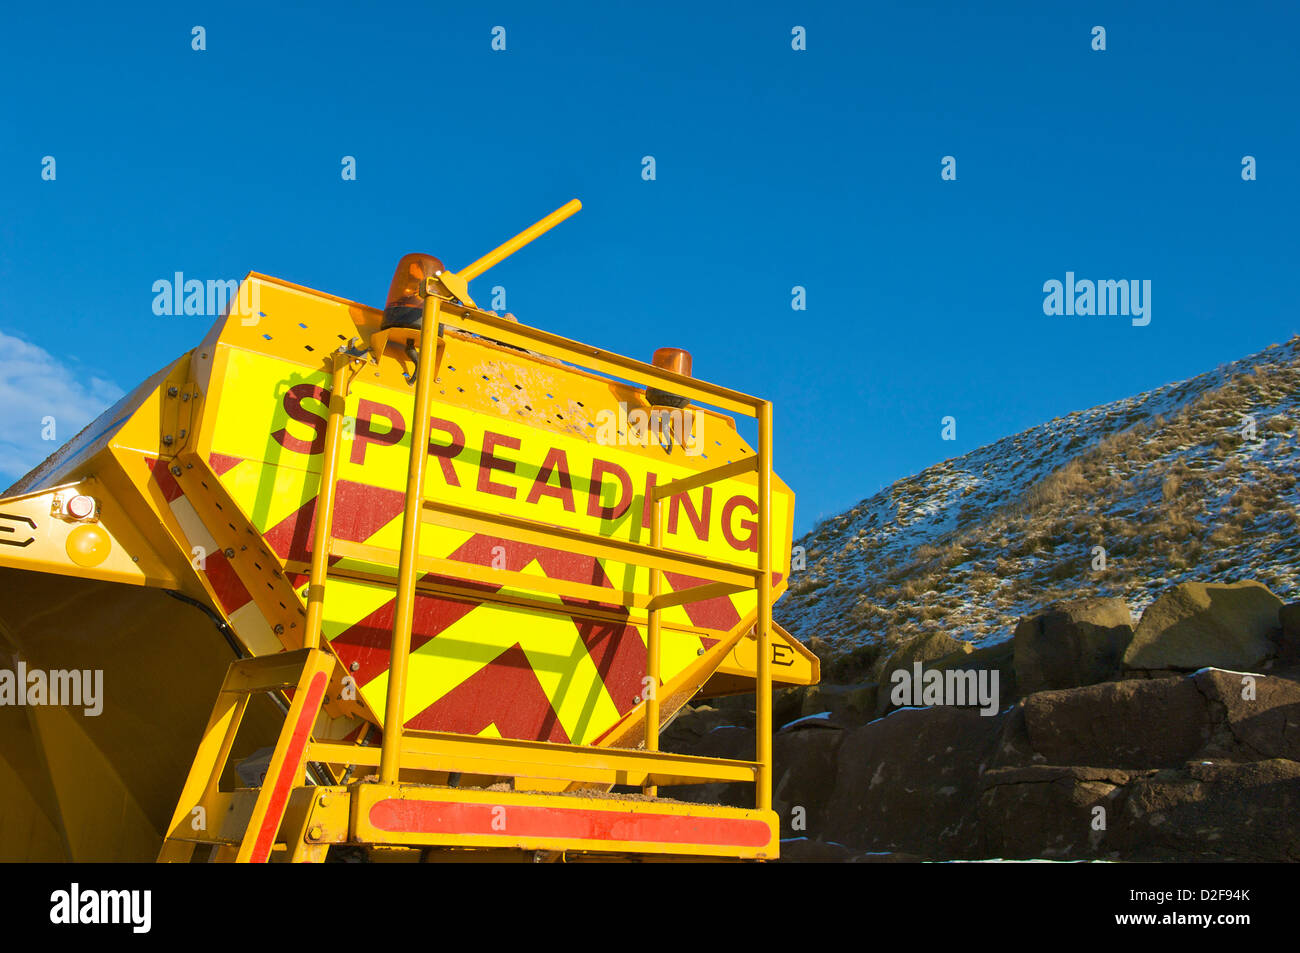 Grit spreader on a cold bright winter day,Blackpool,Lancashire,UK - Stock Image